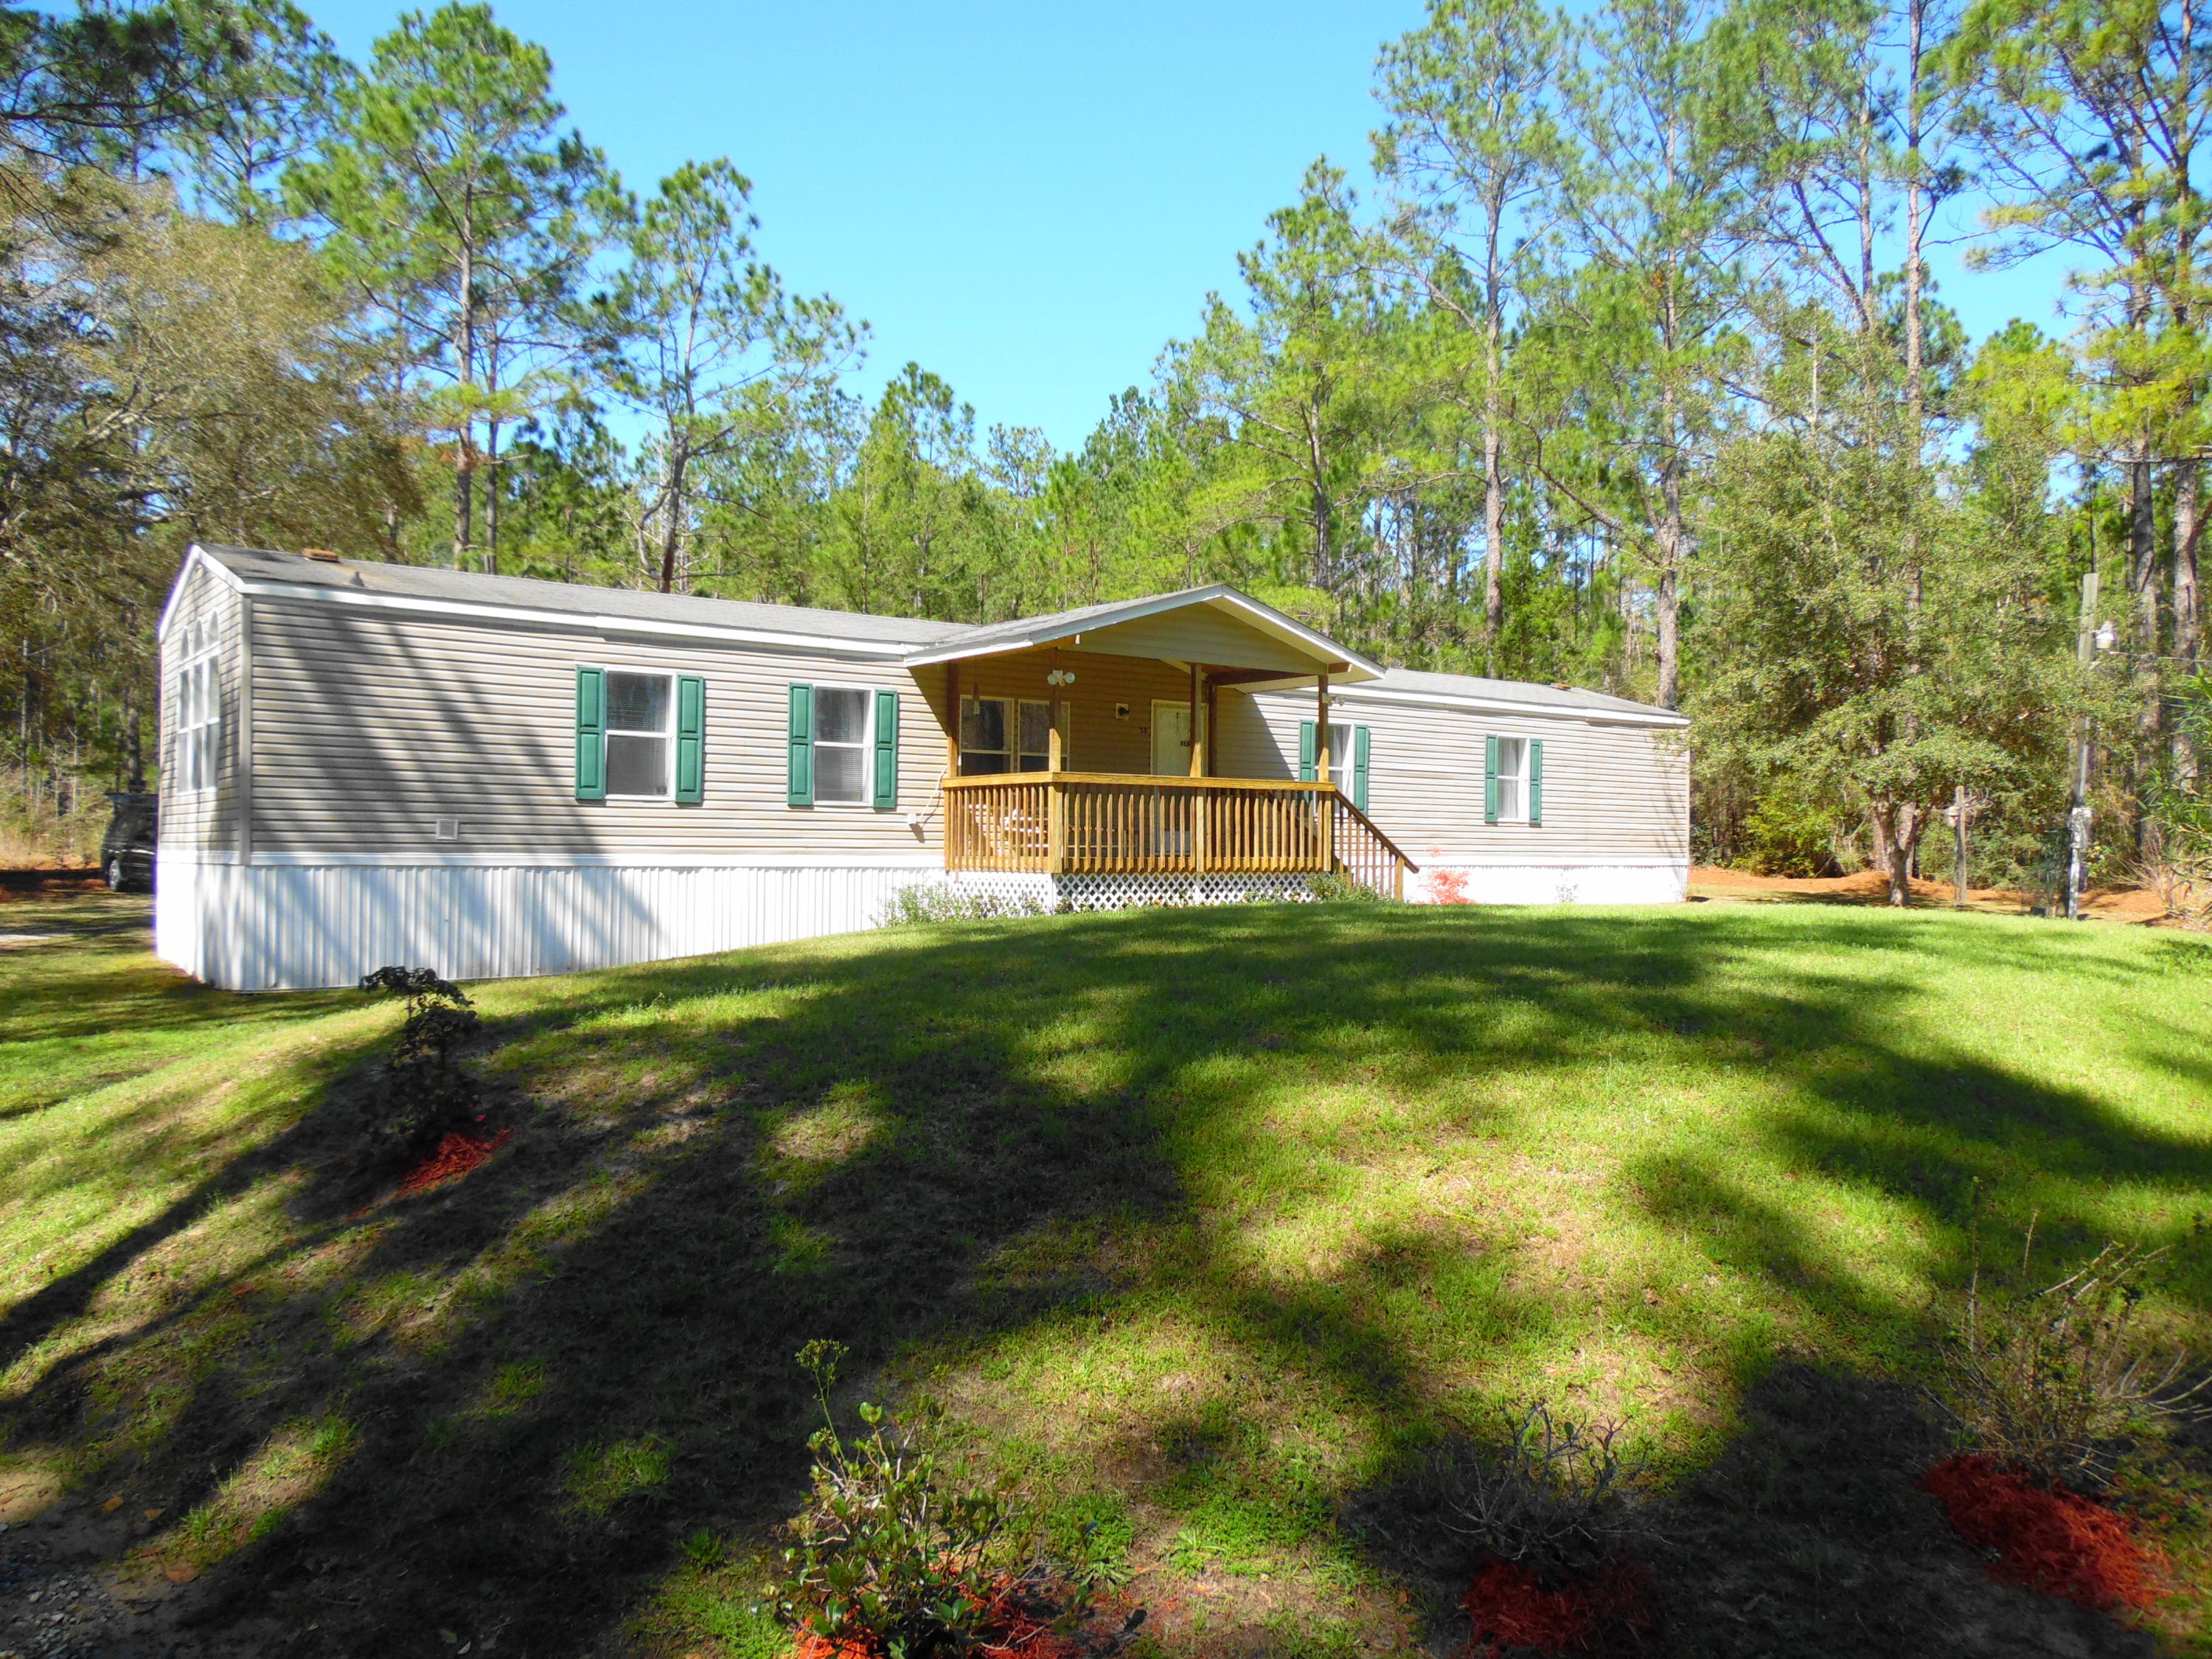 53 Alaqua Terrace, Freeport, FL 32439